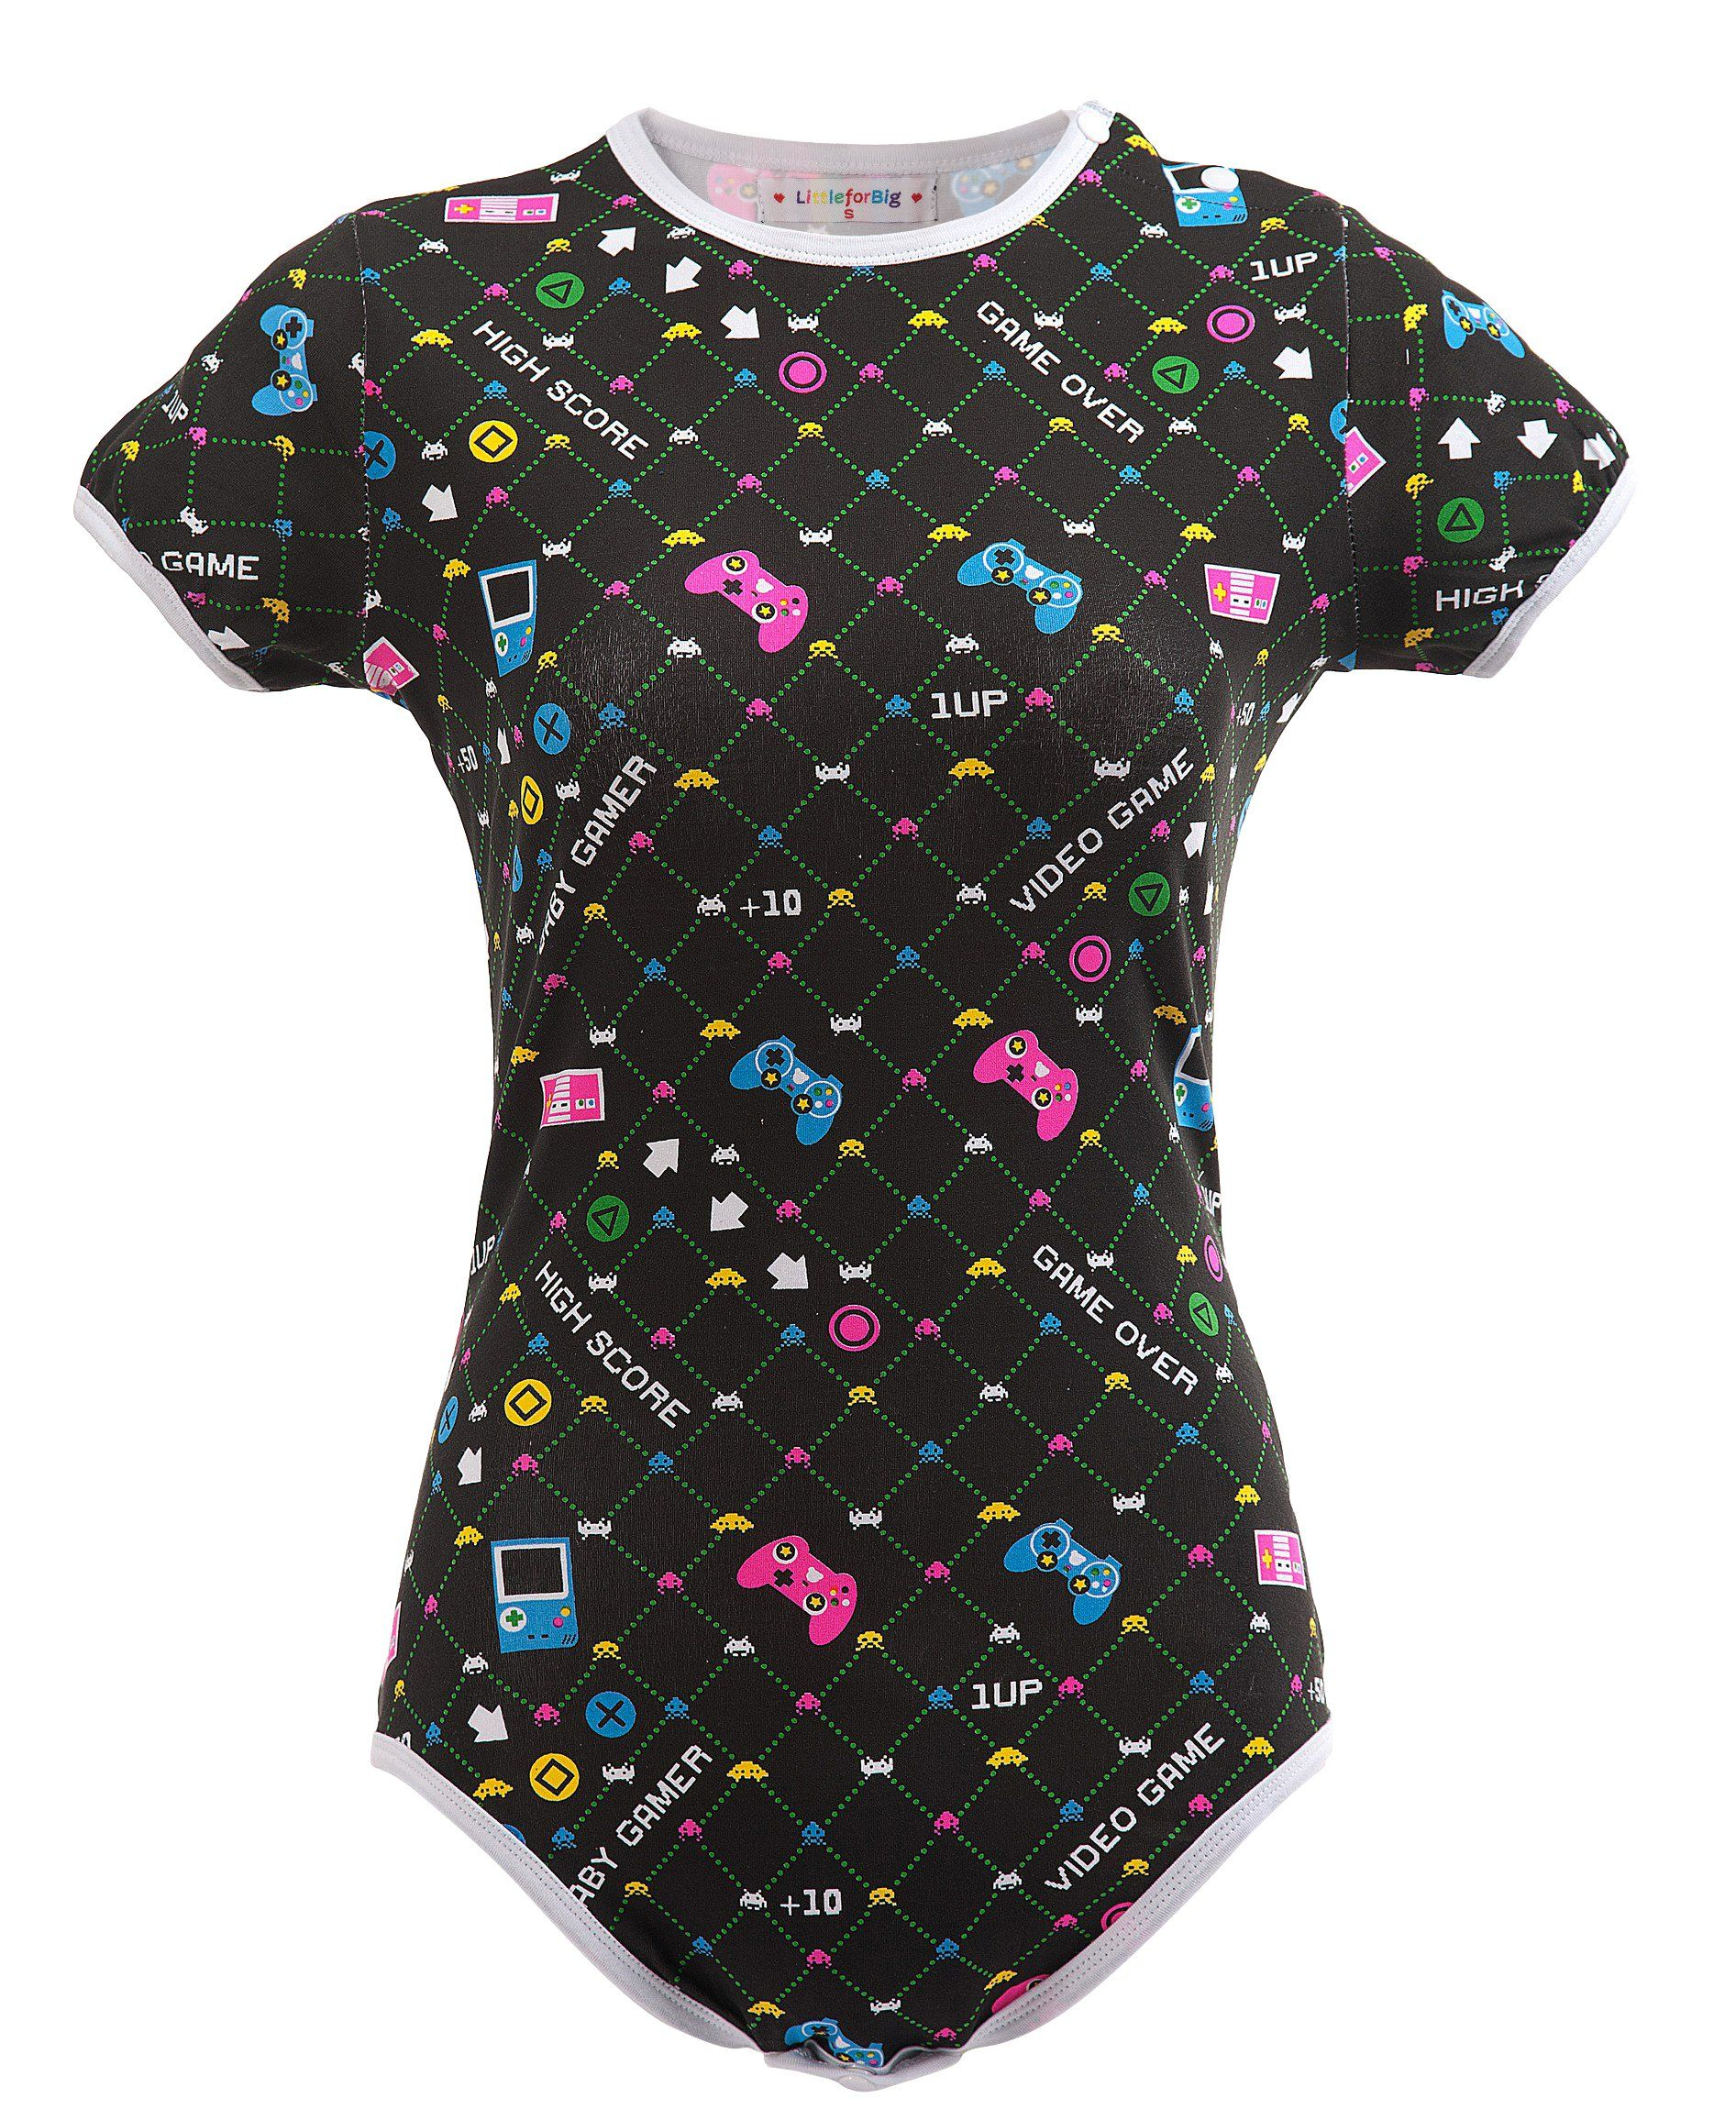 68dba5c8cb Littleforbig Adult Baby Diaper Lover Snap Crotch Romper Onesie Baby Gamer  Onesie XS Black    Continue to the product at the image link.